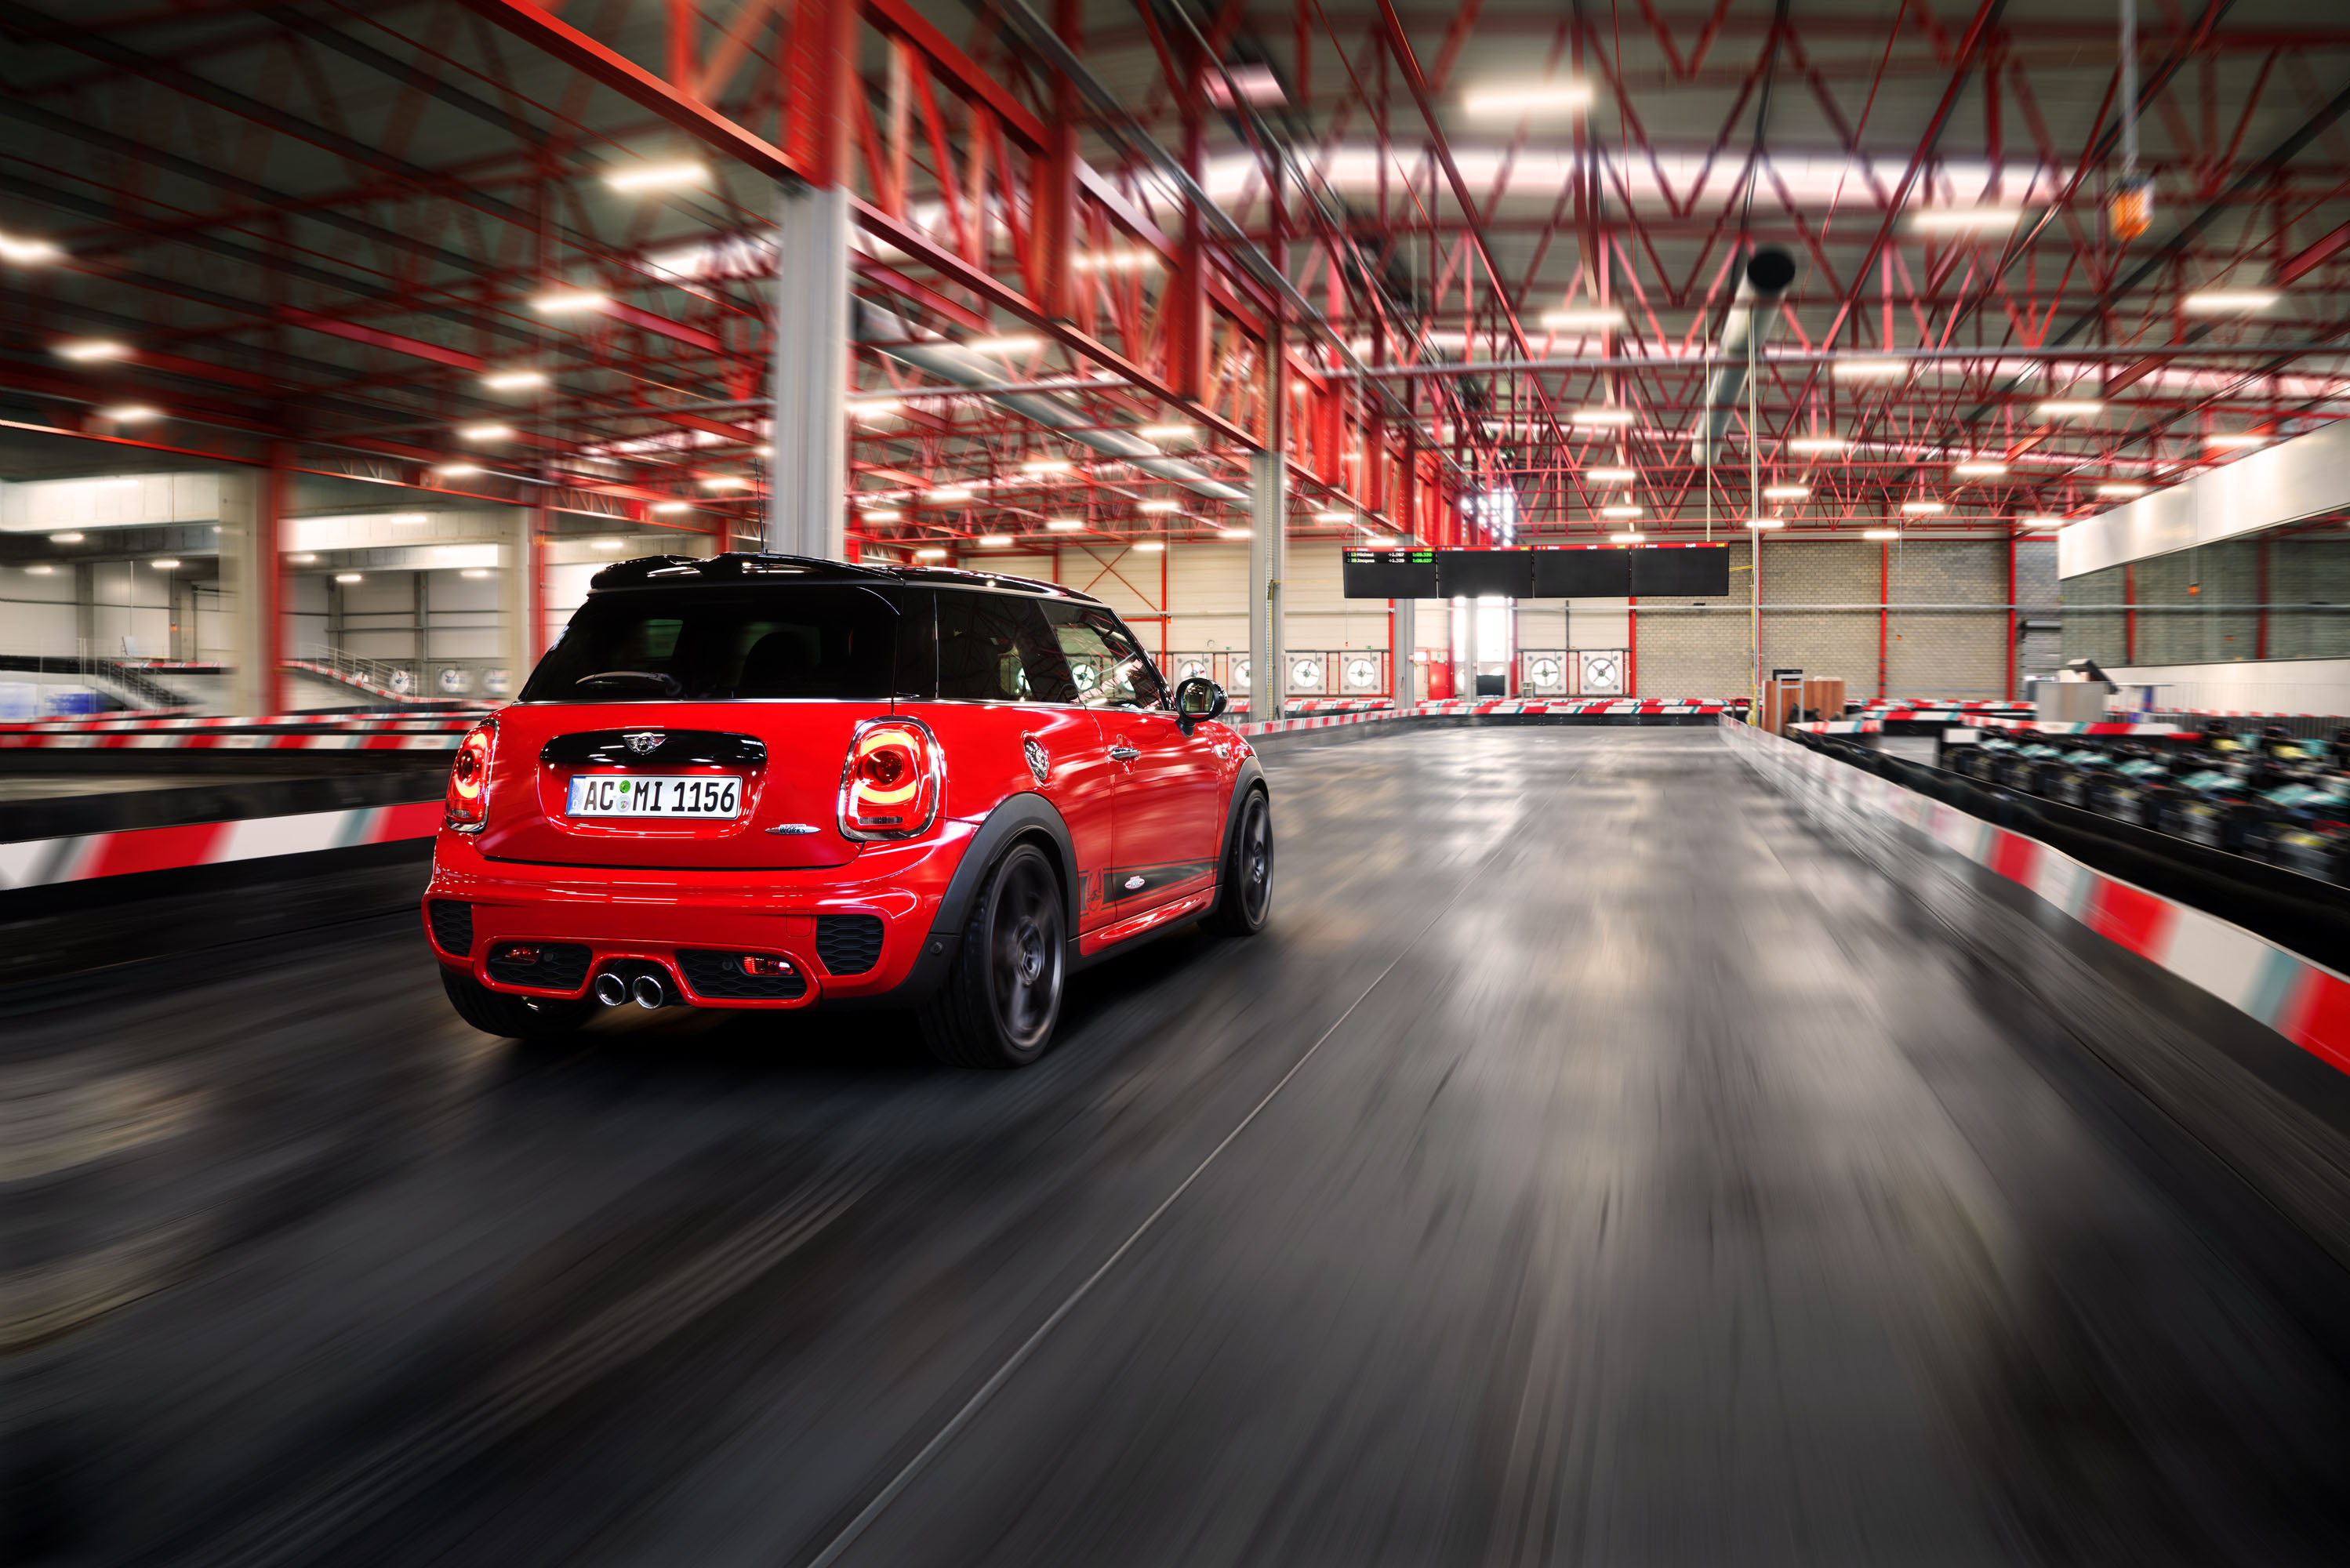 MINI Hatch F56 photo #1